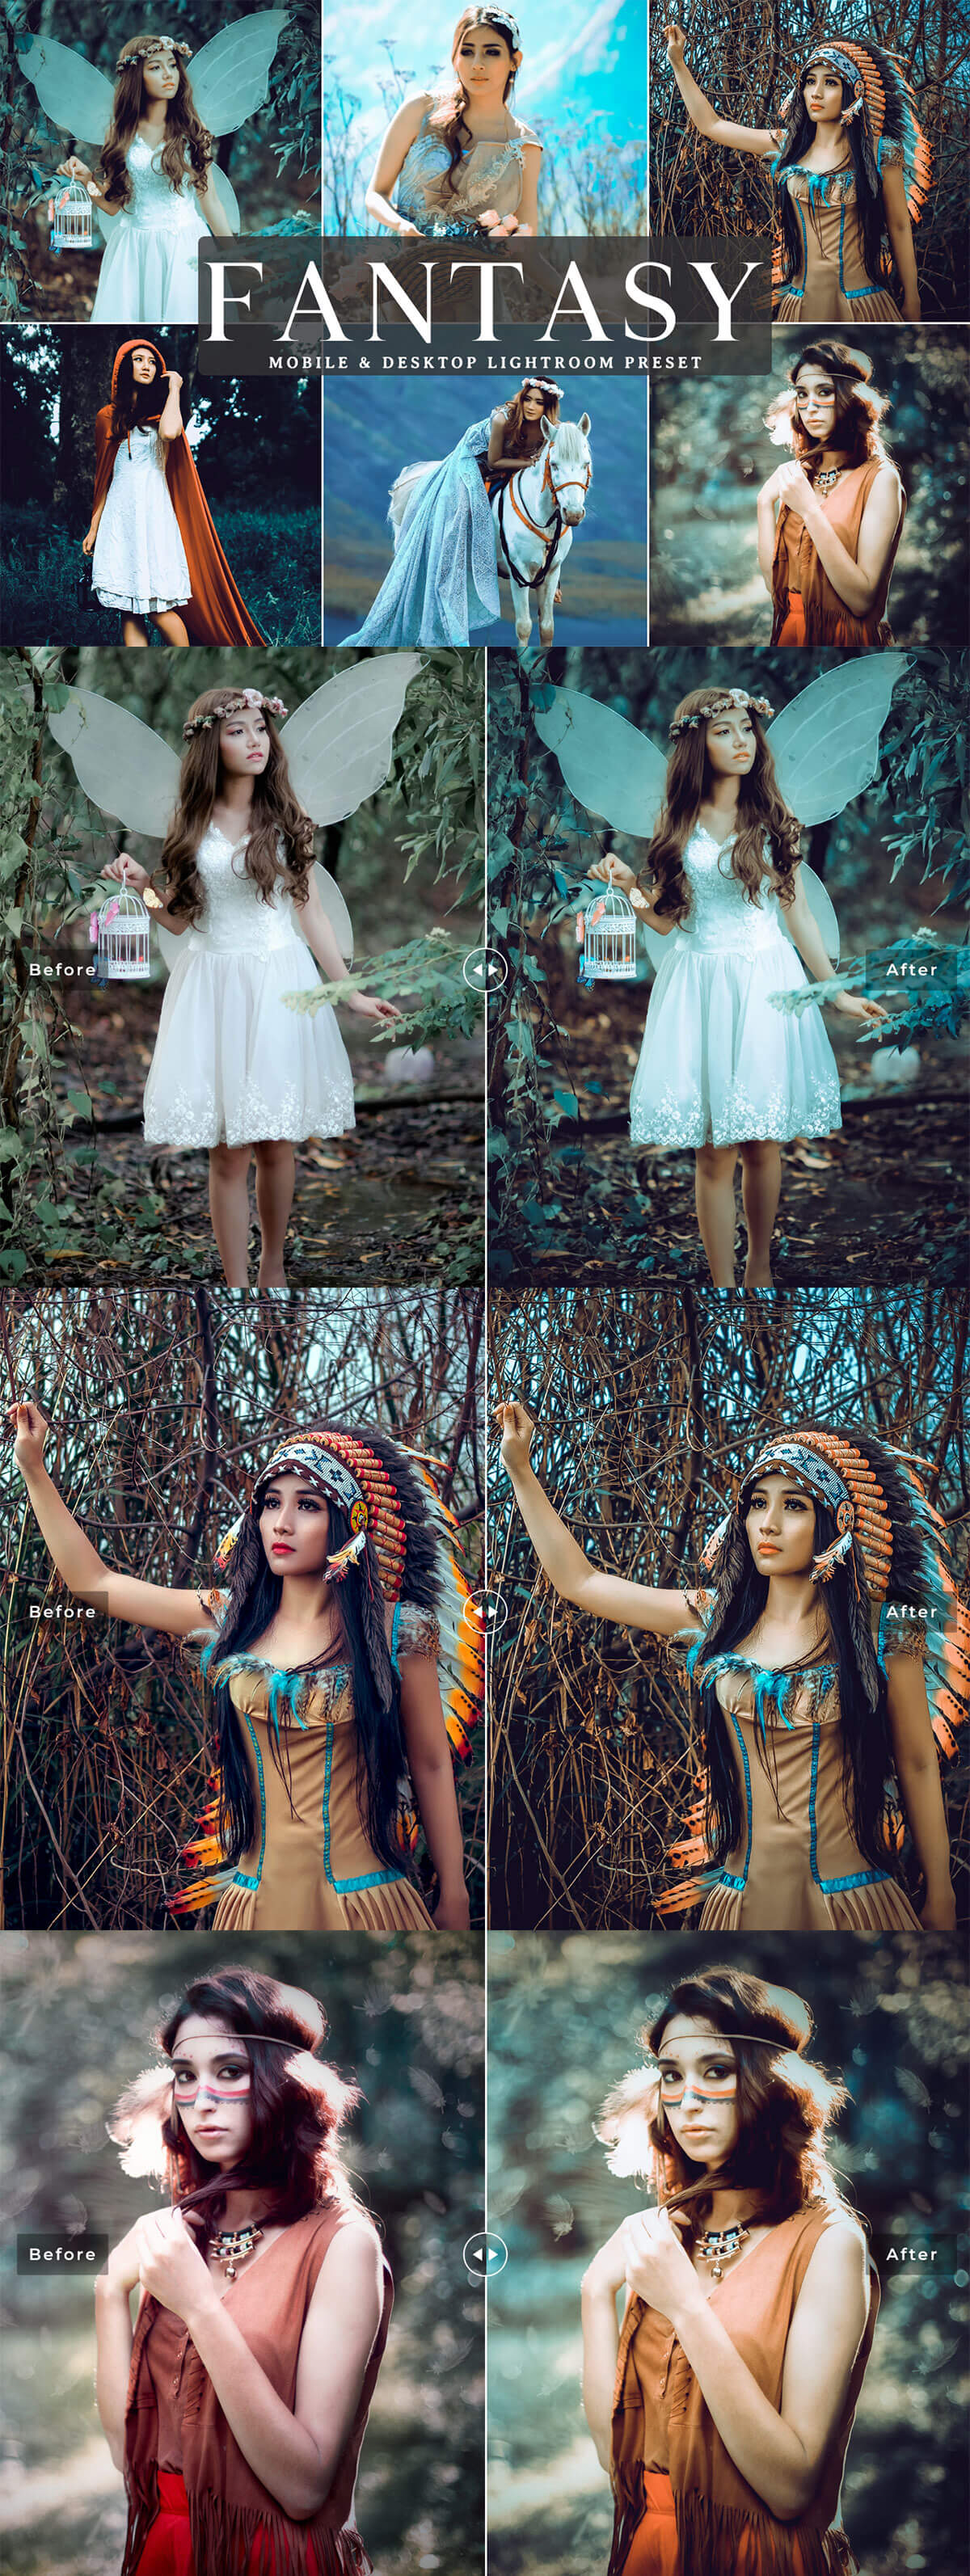 Free Fantasy Lightroom Preset